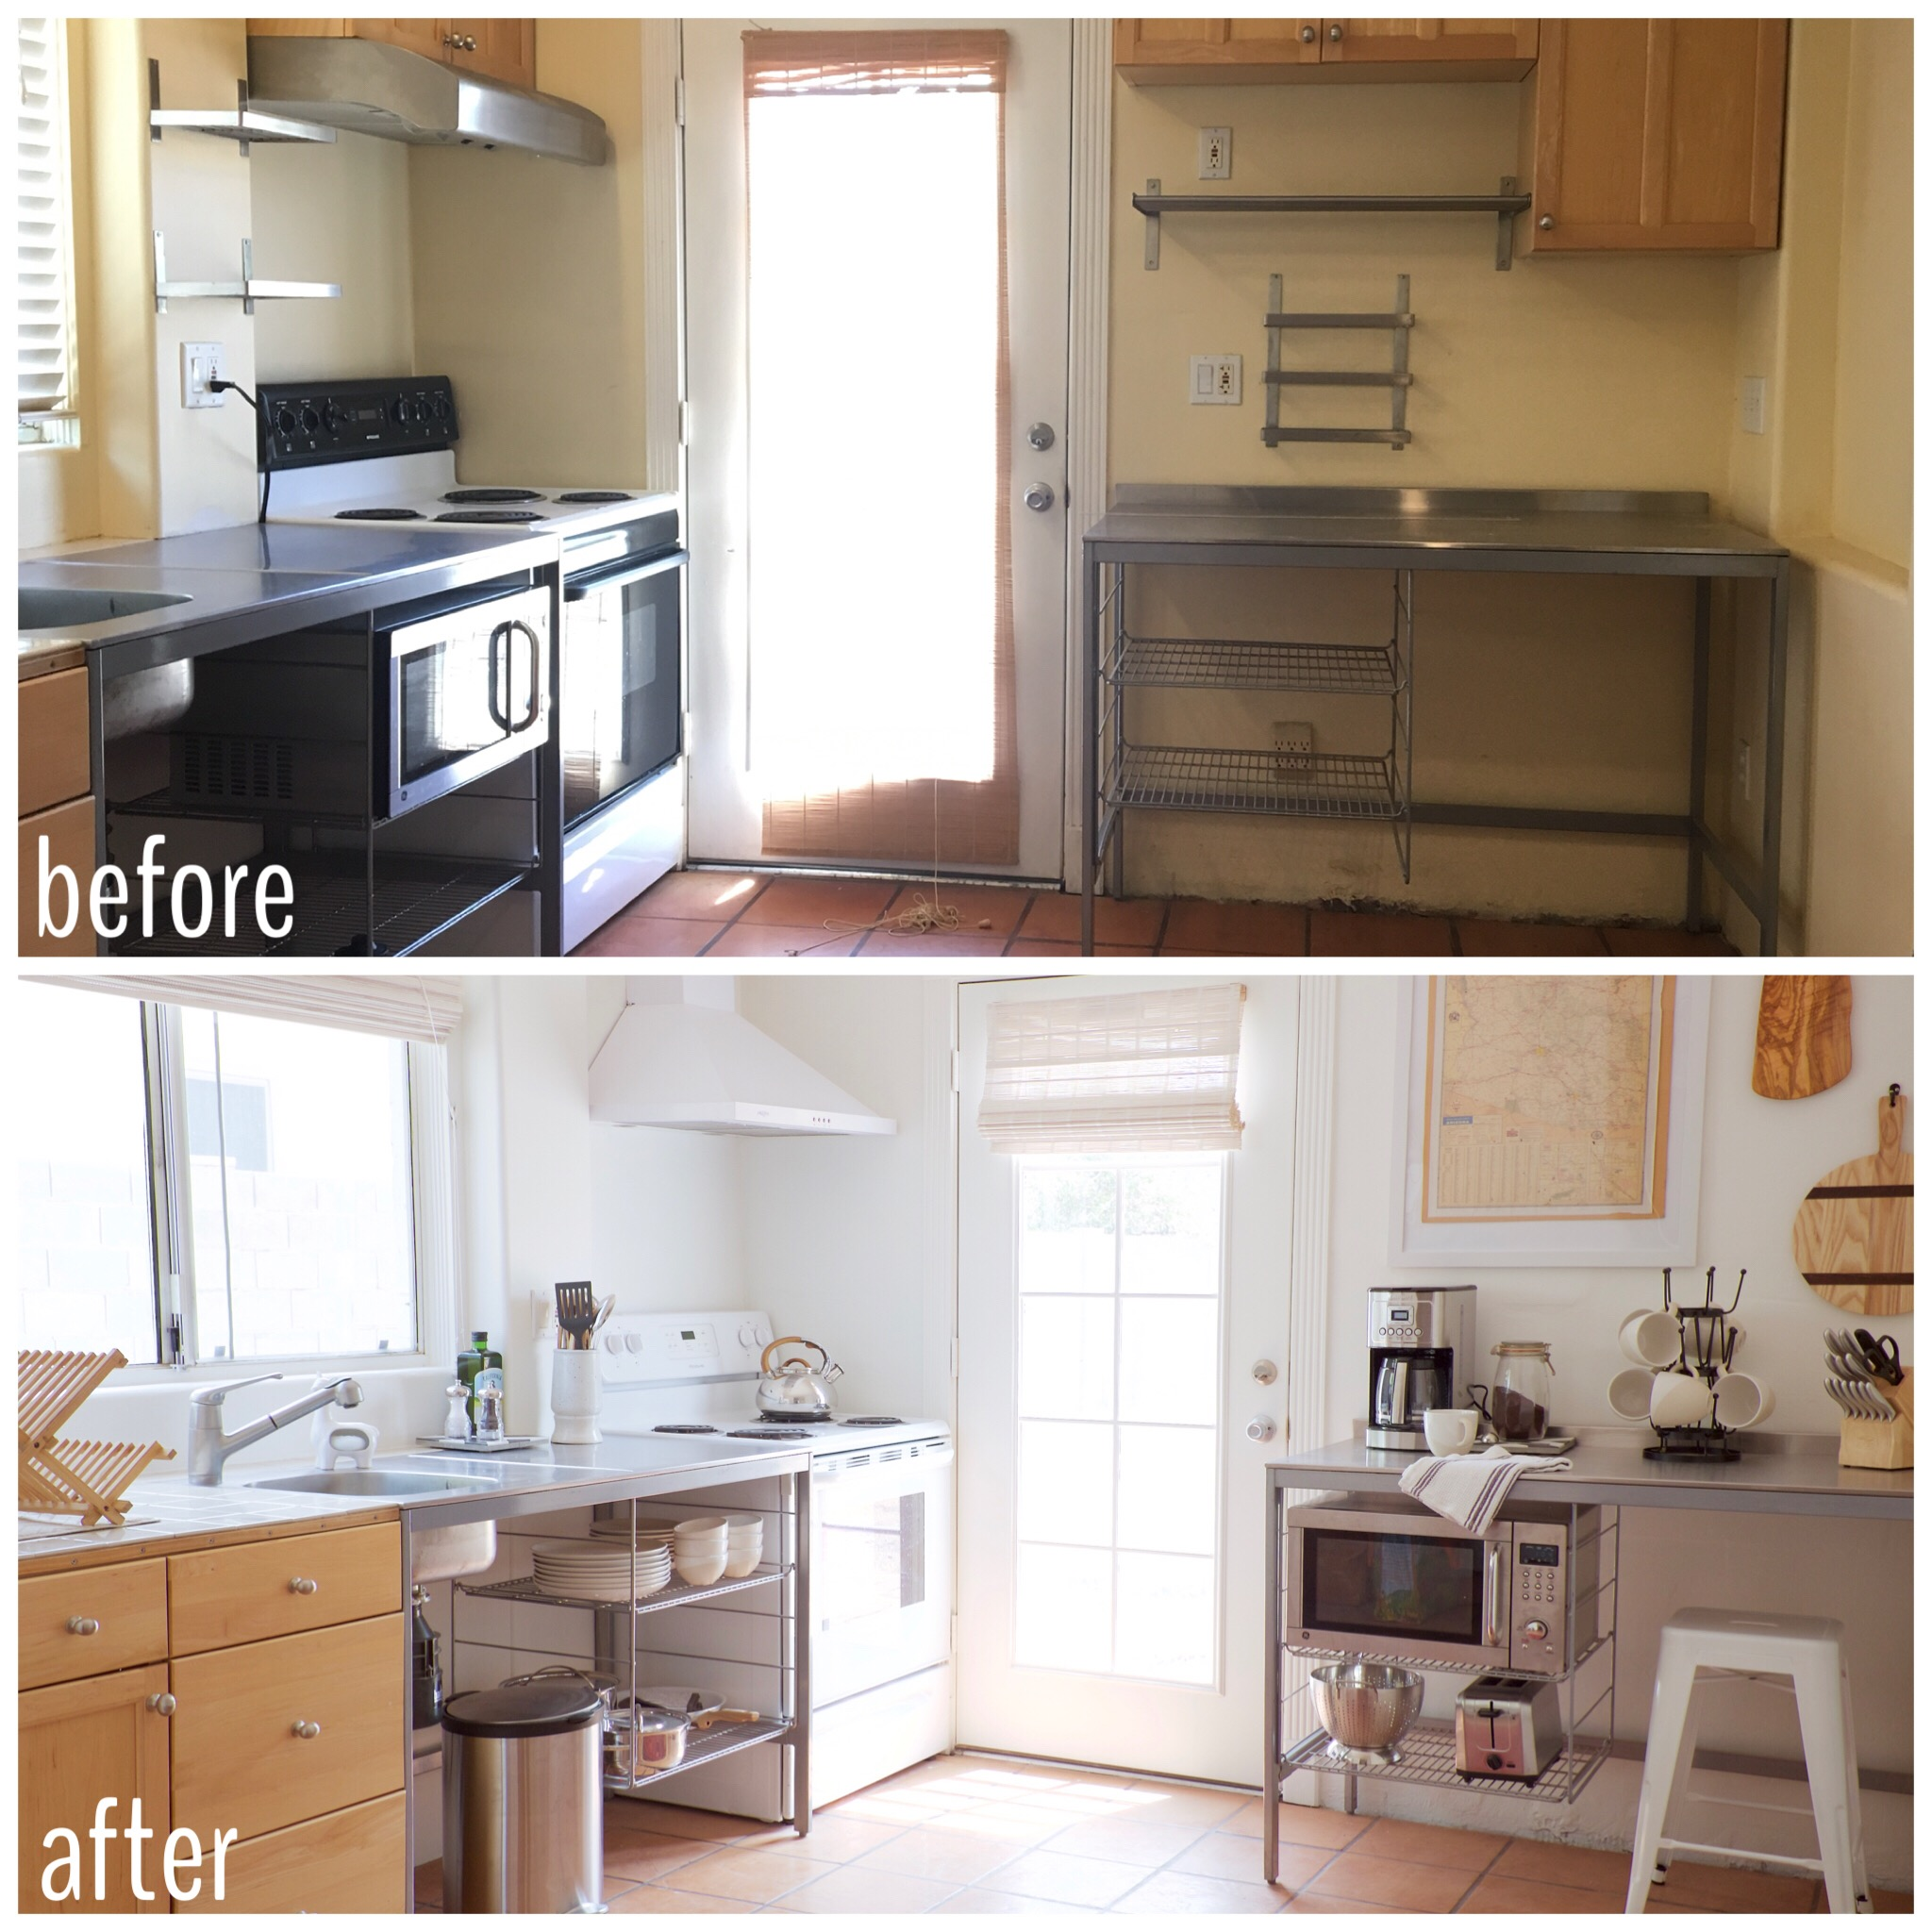 Stainless IKEA Kitchen at The Shack Phoenix Airbnb Before and After